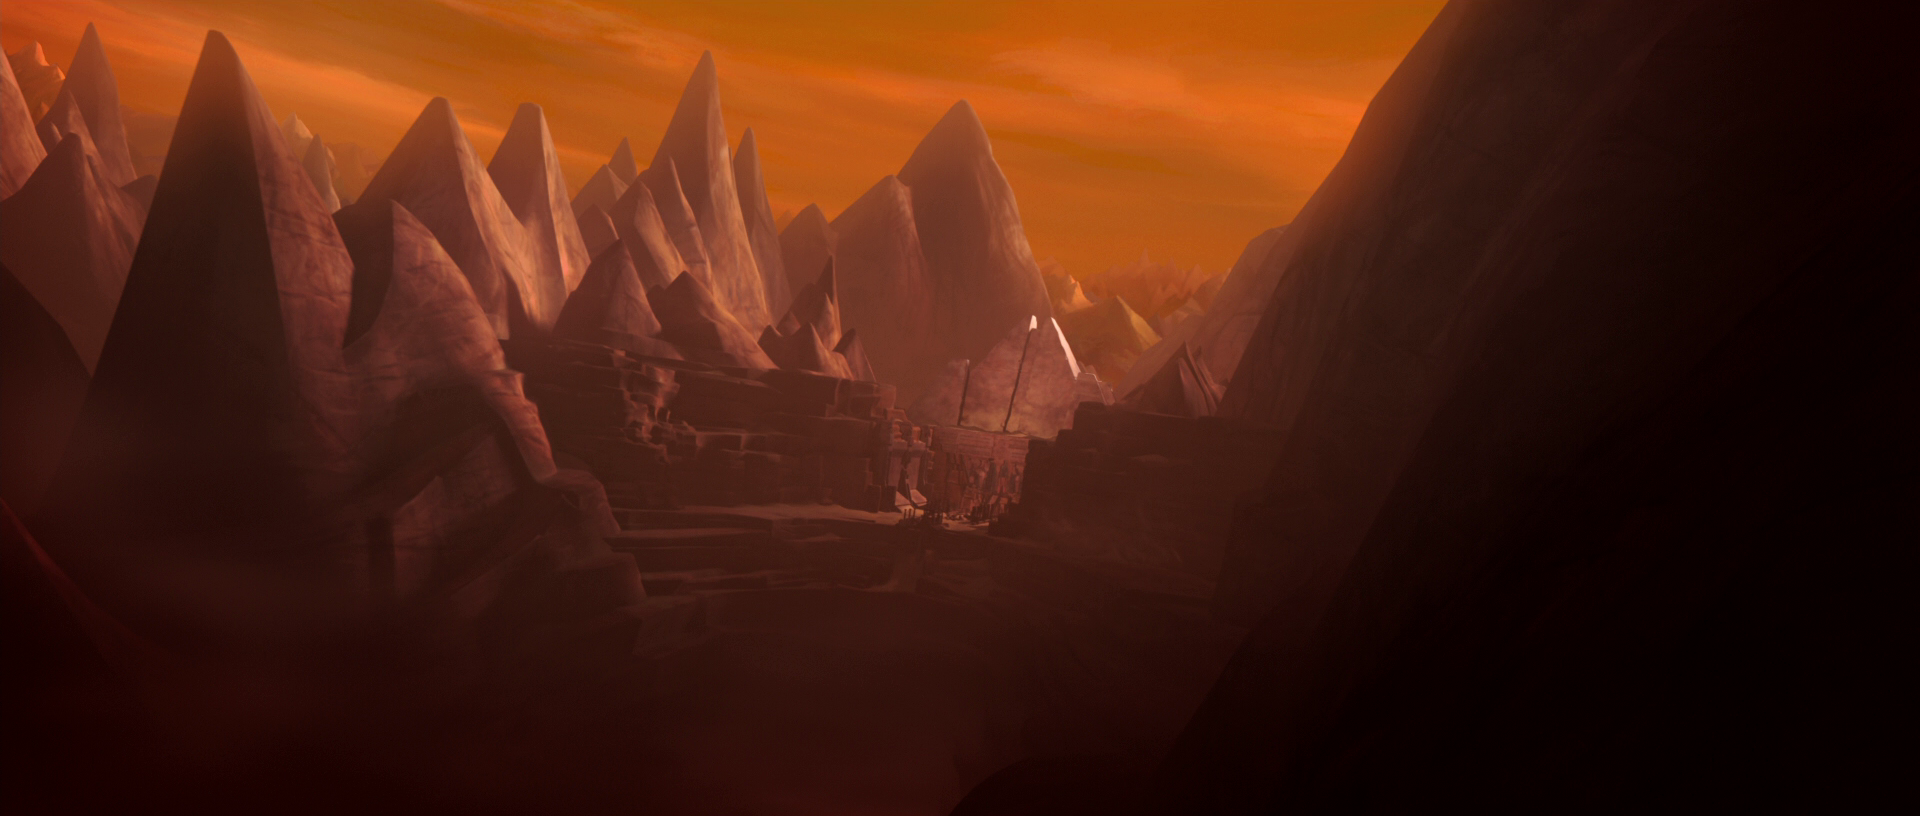 Valley_of_the_Dark_Lords_TCW